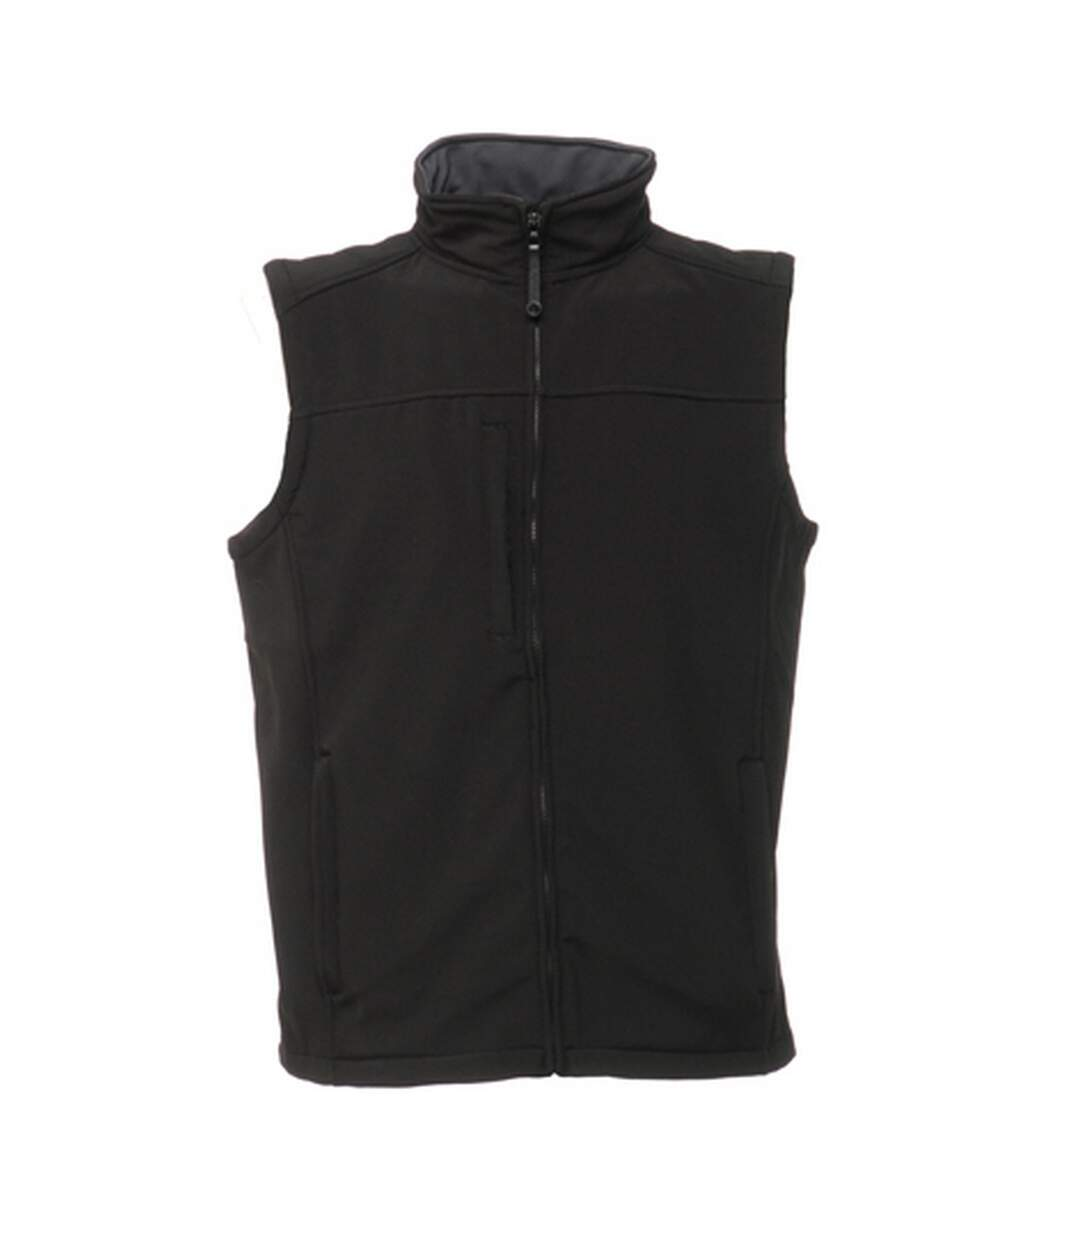 Regatta Mens Flux Softshell Bodywarmer / Sleeveless Jacket (Water Repellent & Wind Resistant) (All Black) - UTRW1213